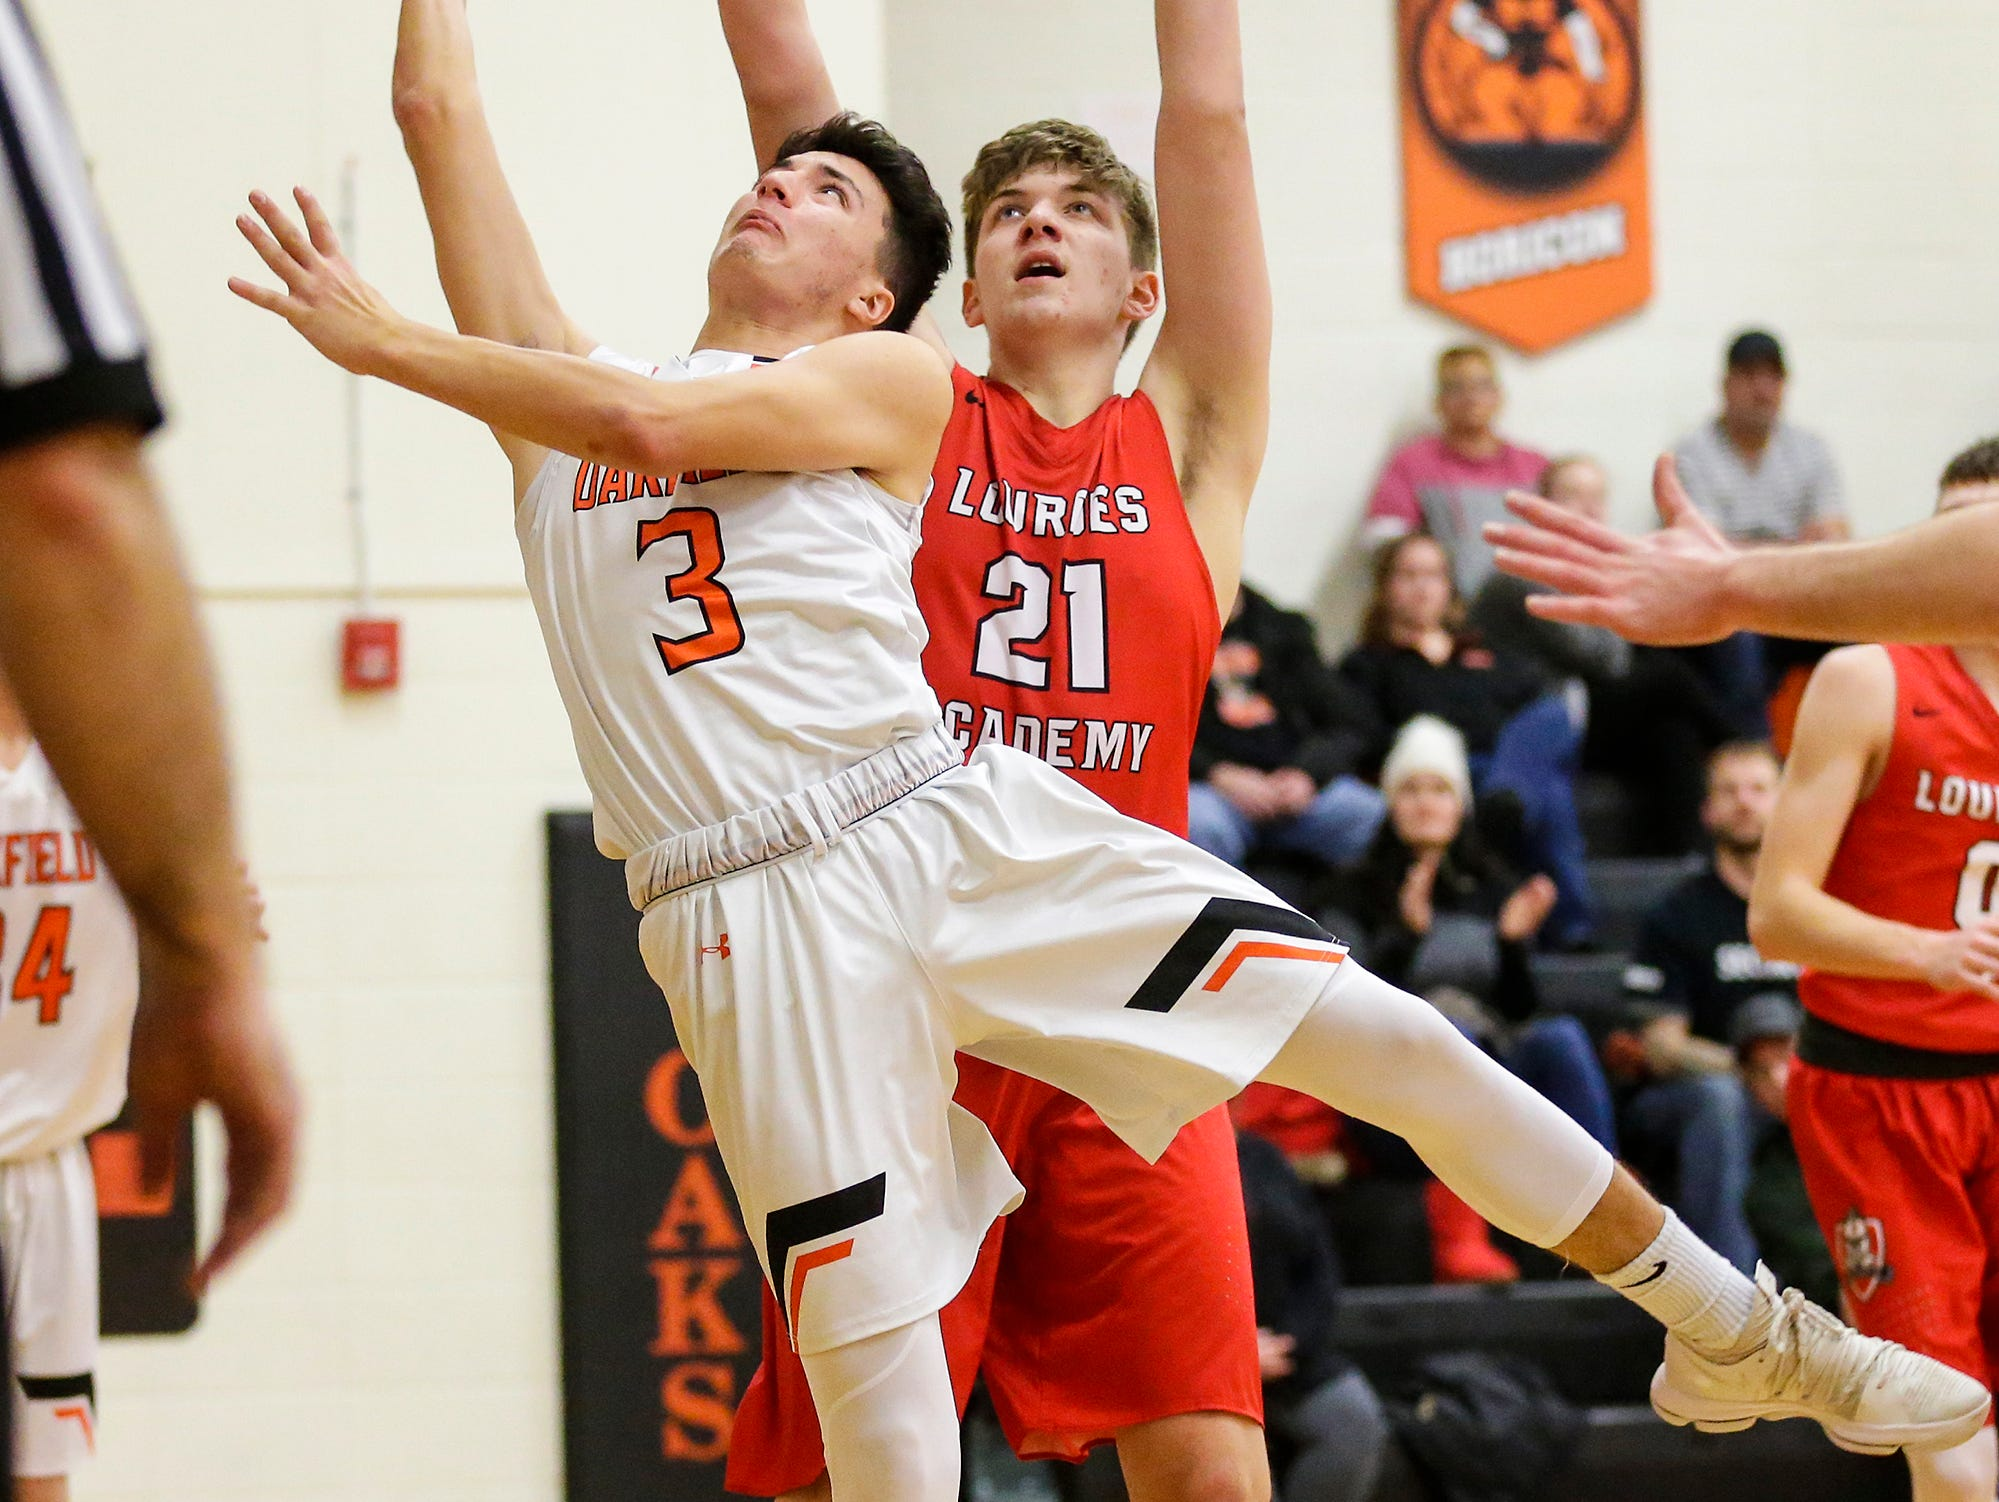 Oakfield High School boys basketball's Jacob Cedar gets fouled by Lourdes Academy's George Muench during their game Thursday, January 24, 2019 in Oakfield. Lourdes Academy won the game 83-48. Doug Raflik/USA TODAY NETWORK-Wisconsin